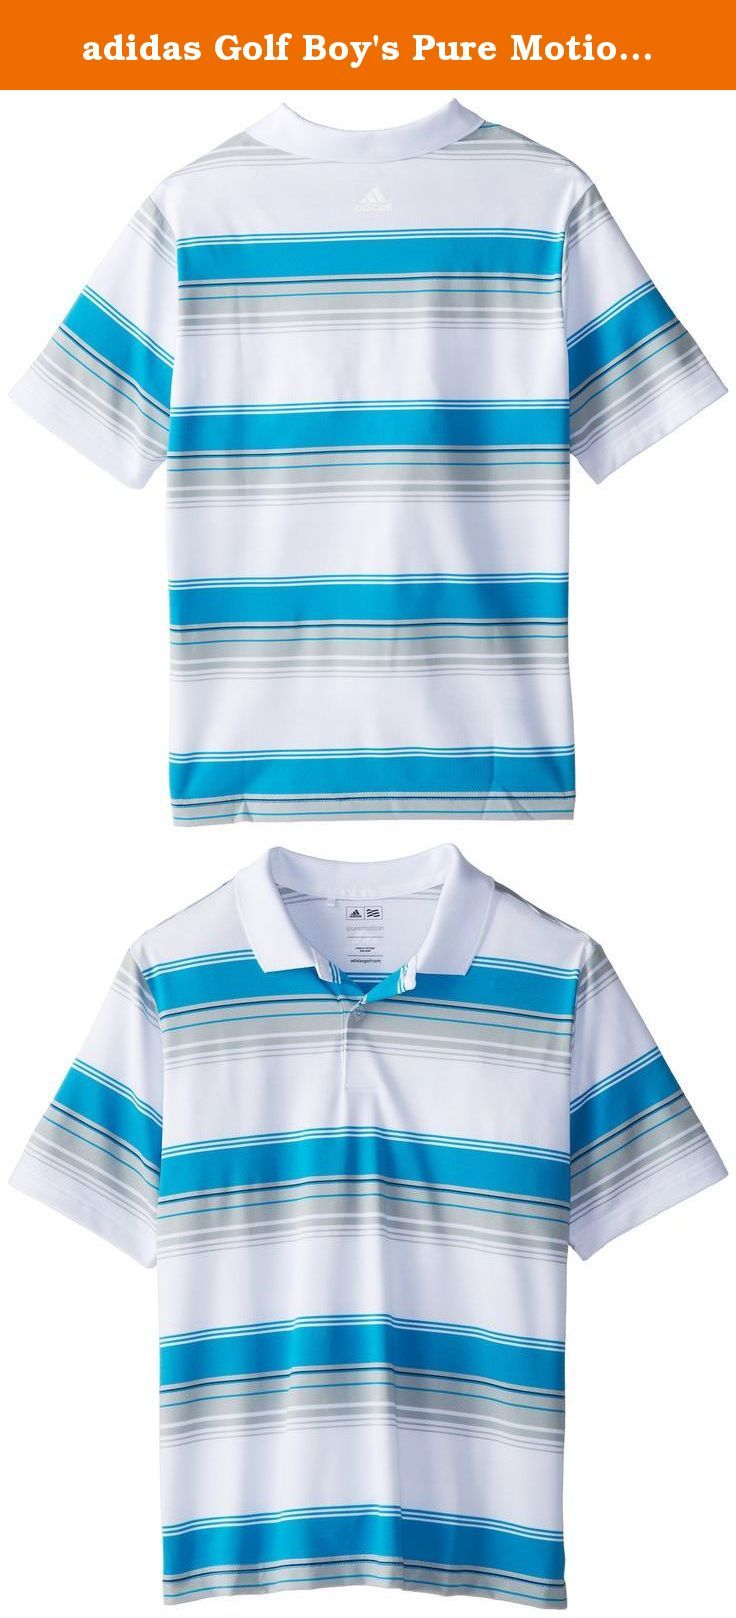 adidas Golf Boy's Pure Motion Merch Stripe Polo, White/Light Onix/Solar Blue/Midnight, Small. Sometimes, you've just got to play with boldness. Go straight for the pin with total confidence in this rousing merch stripe polo. A blend of moisture-wicking fiber with 5% Lycra for stretch and ease, you'll stand out of the crowd as you attack the course in comfort.